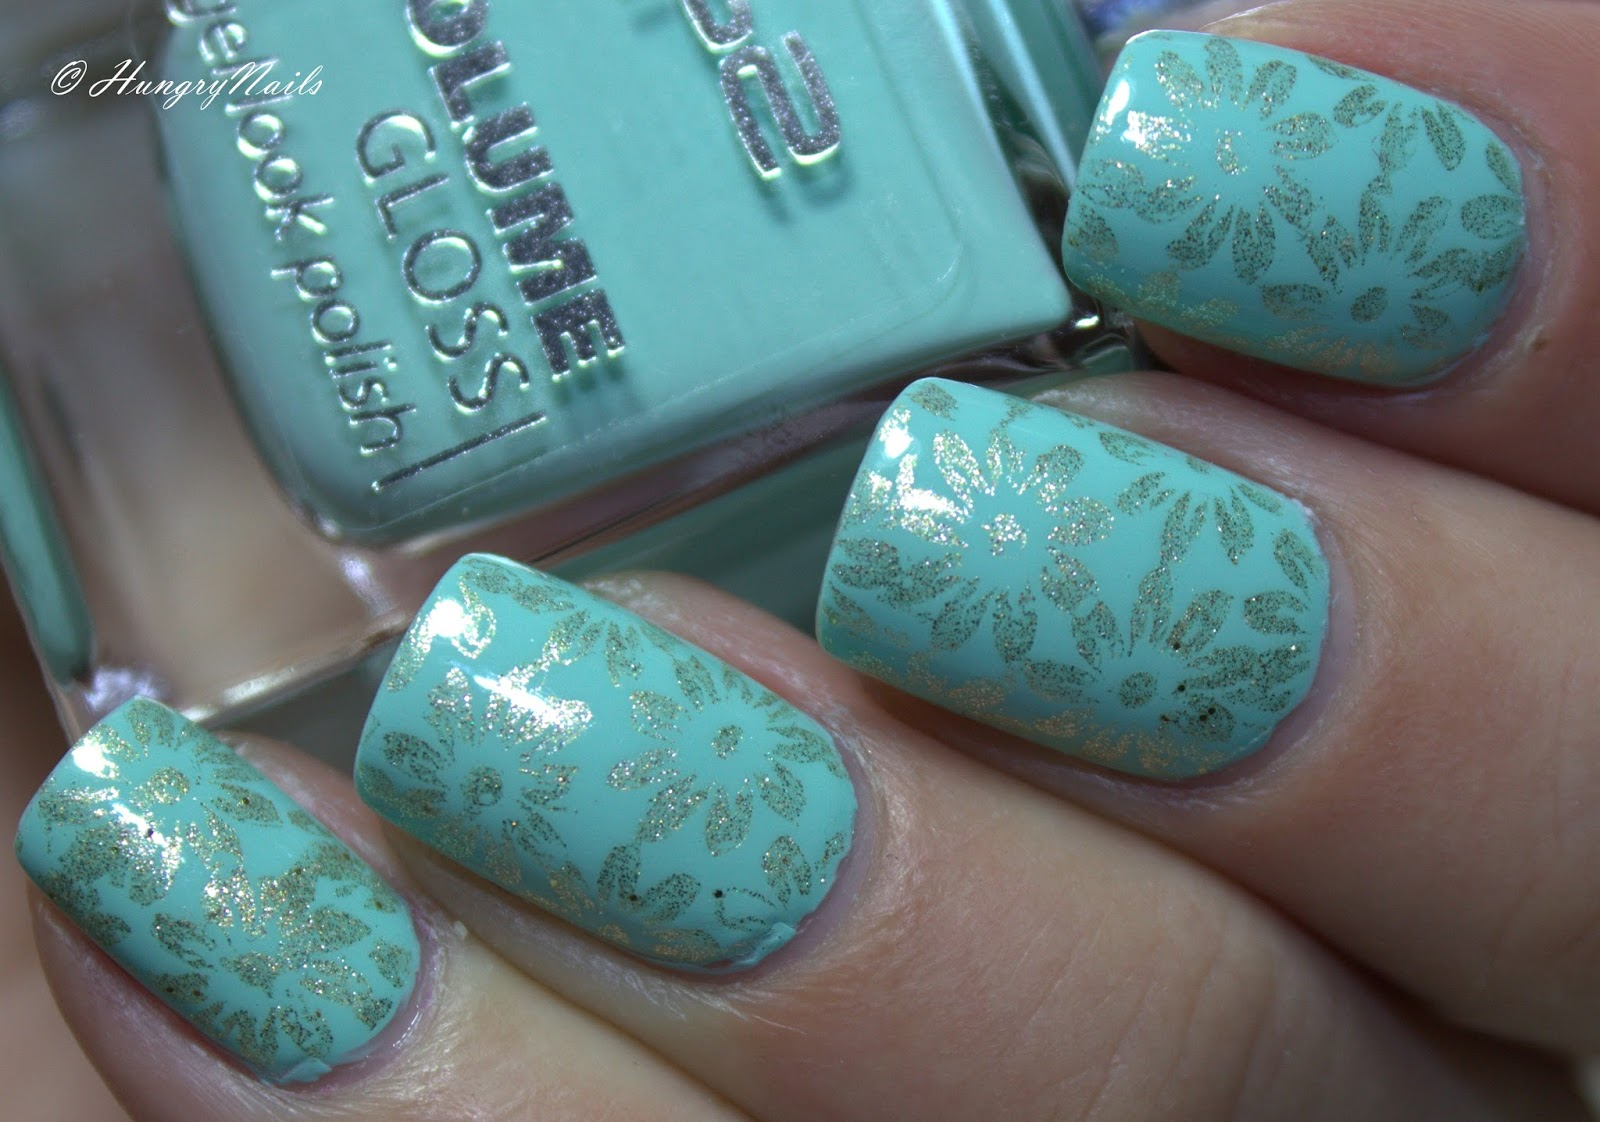 http://hungrynails.blogspot.de/2015/04/p2-minty-mademoiselle.html